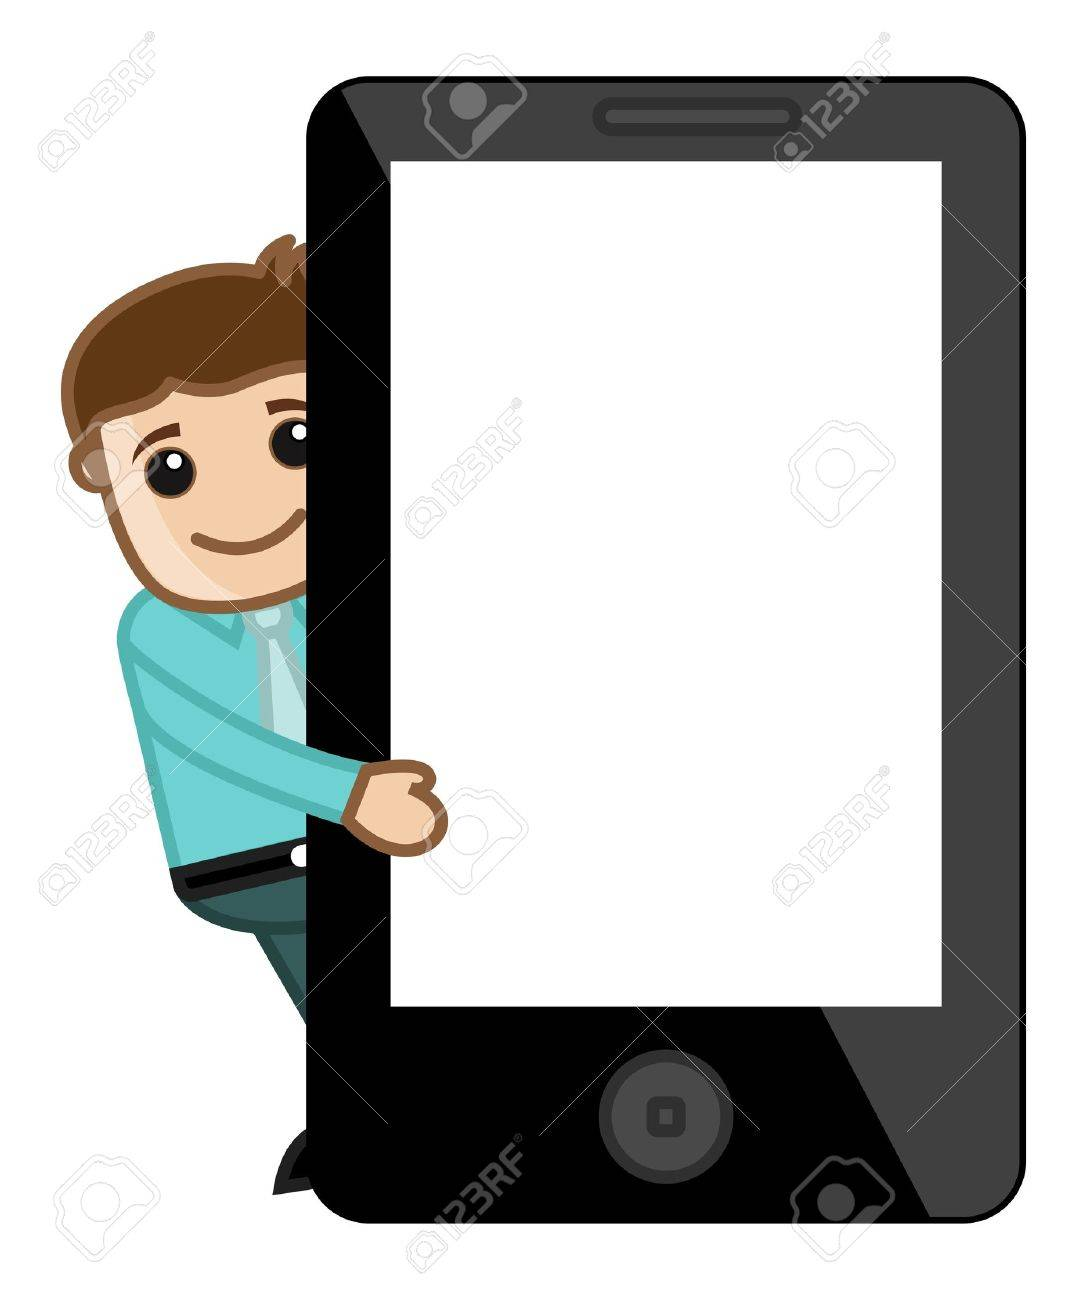 Man Presenting Tablet or Smartphone Stock Vector - 20771529